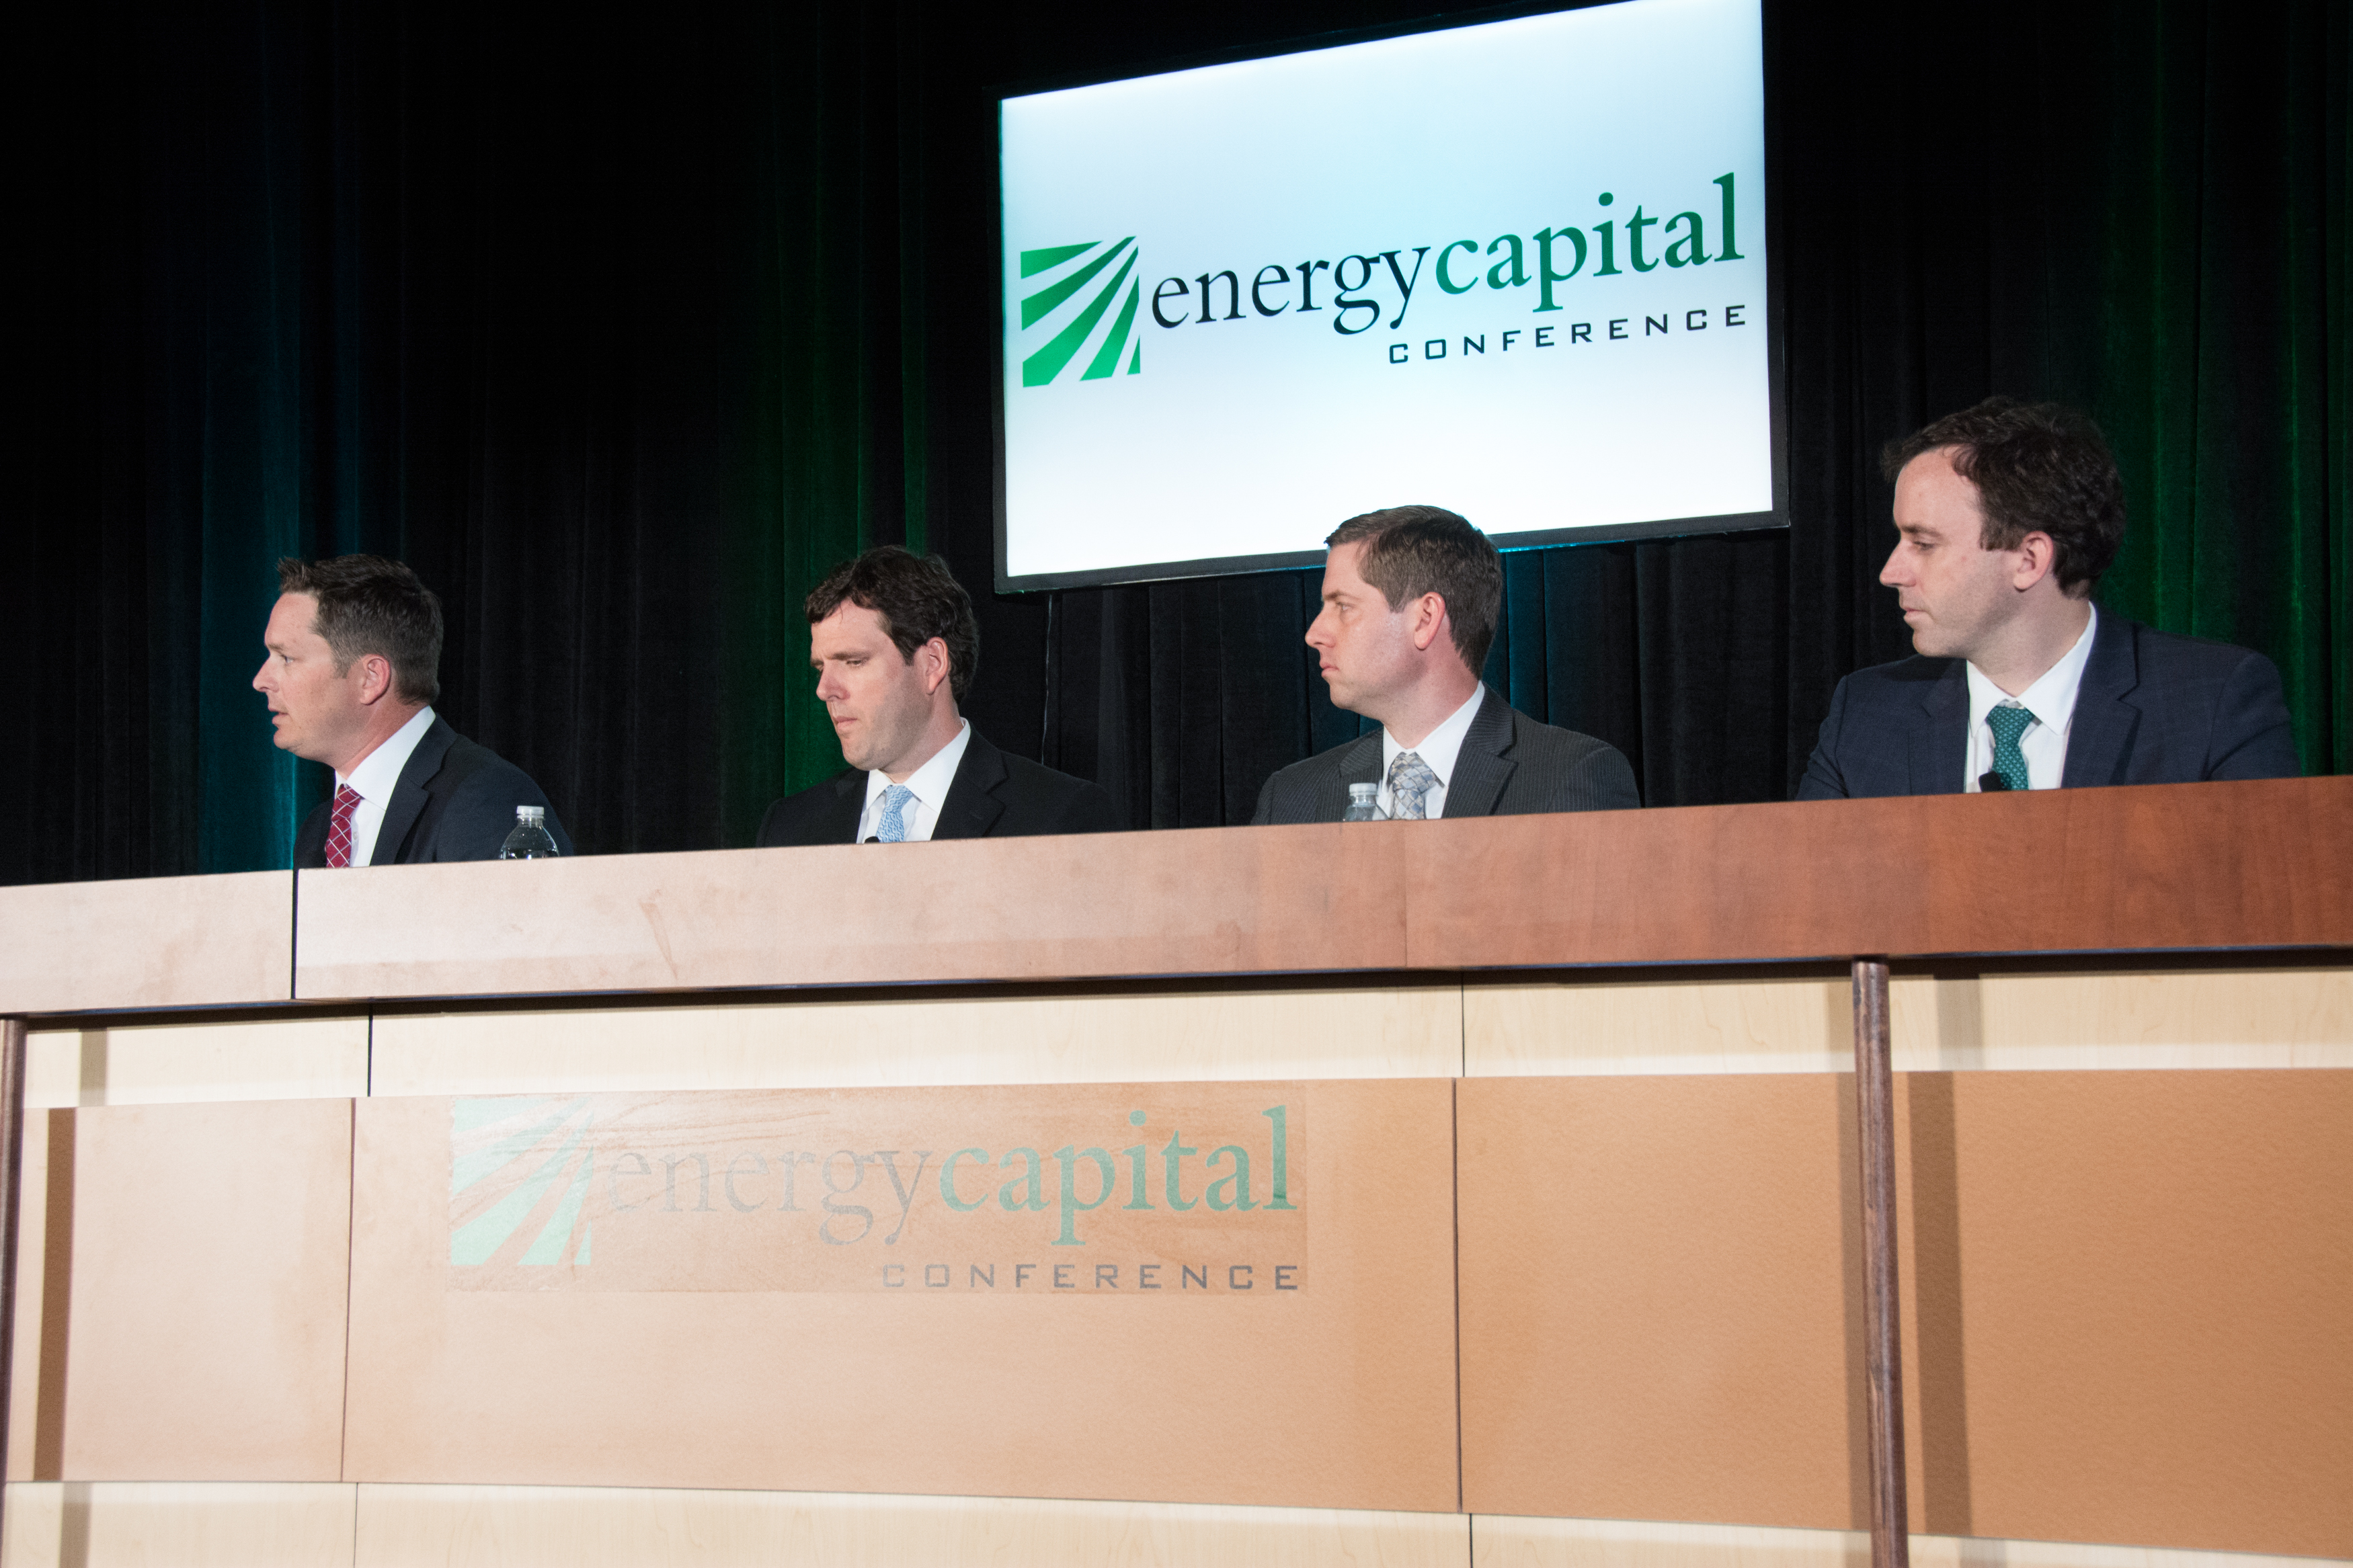 Energy Capital Conference